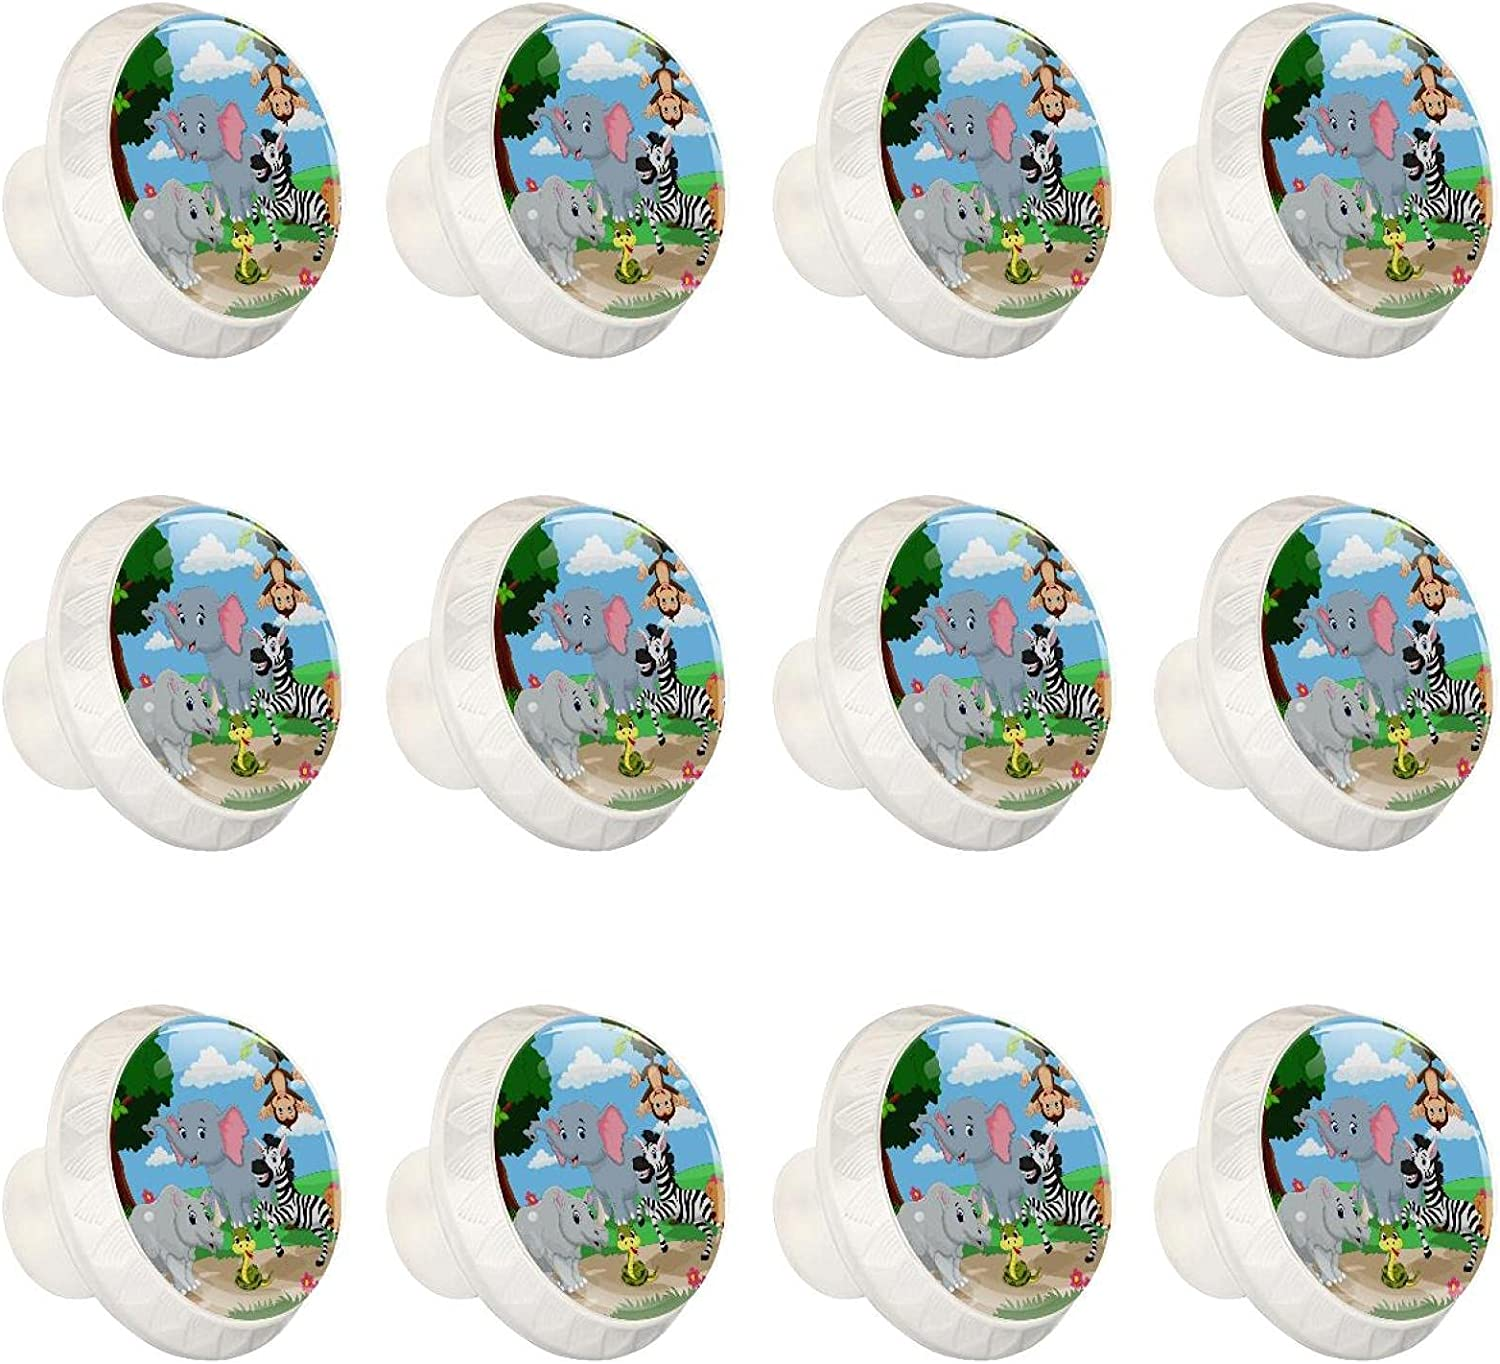 Zuyoon 12 Packs Cabinet Knobs Zoo Gla Surprise price Tree Colorful Las Vegas Mall Kids Animals